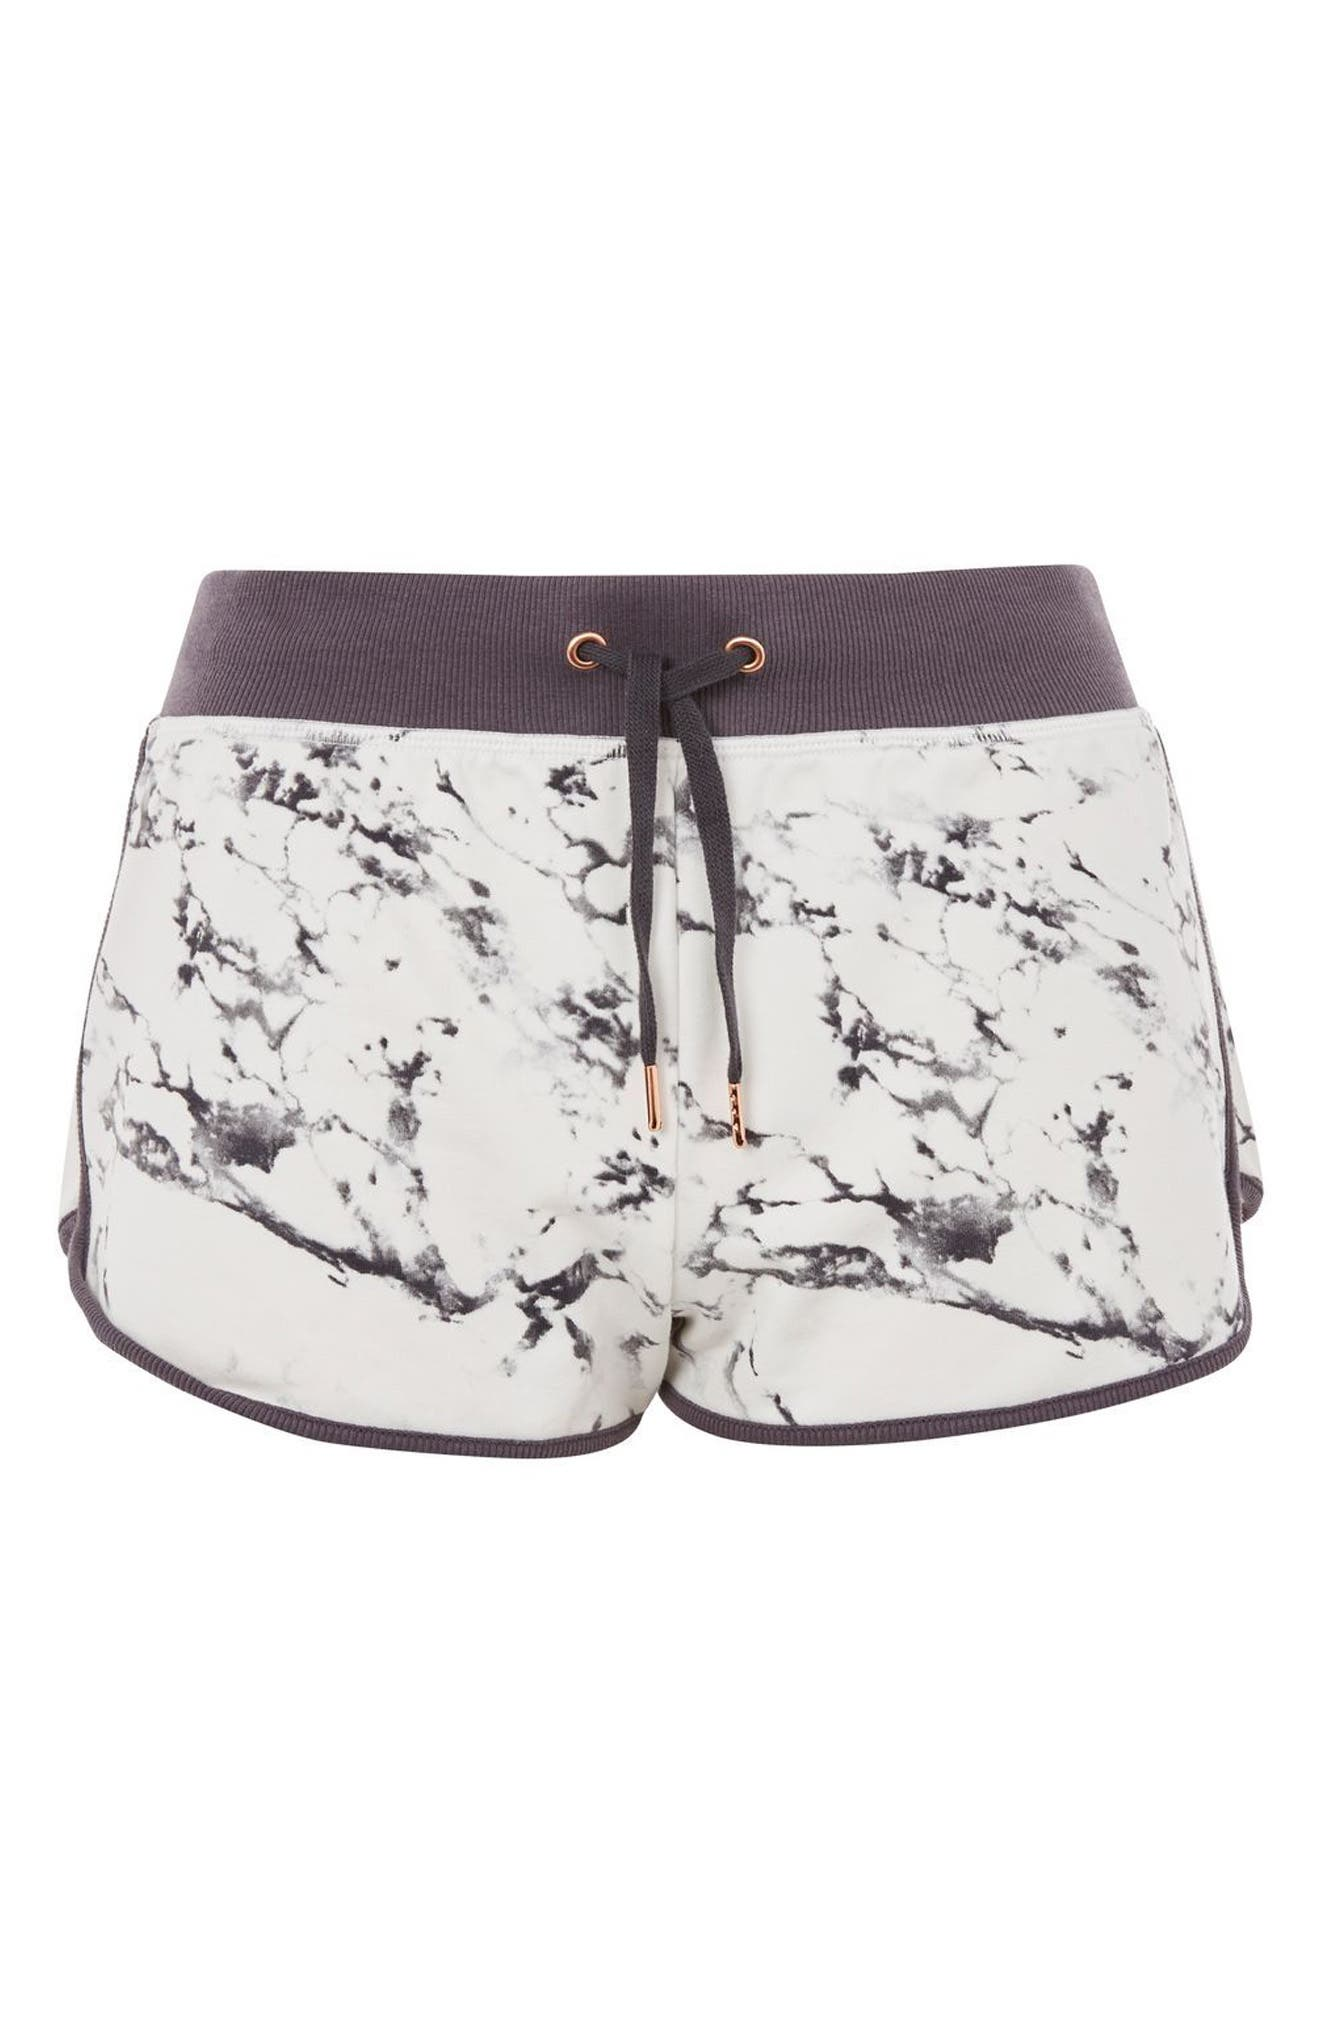 Marble Print Shorts,                             Main thumbnail 1, color,                             Grey Multi